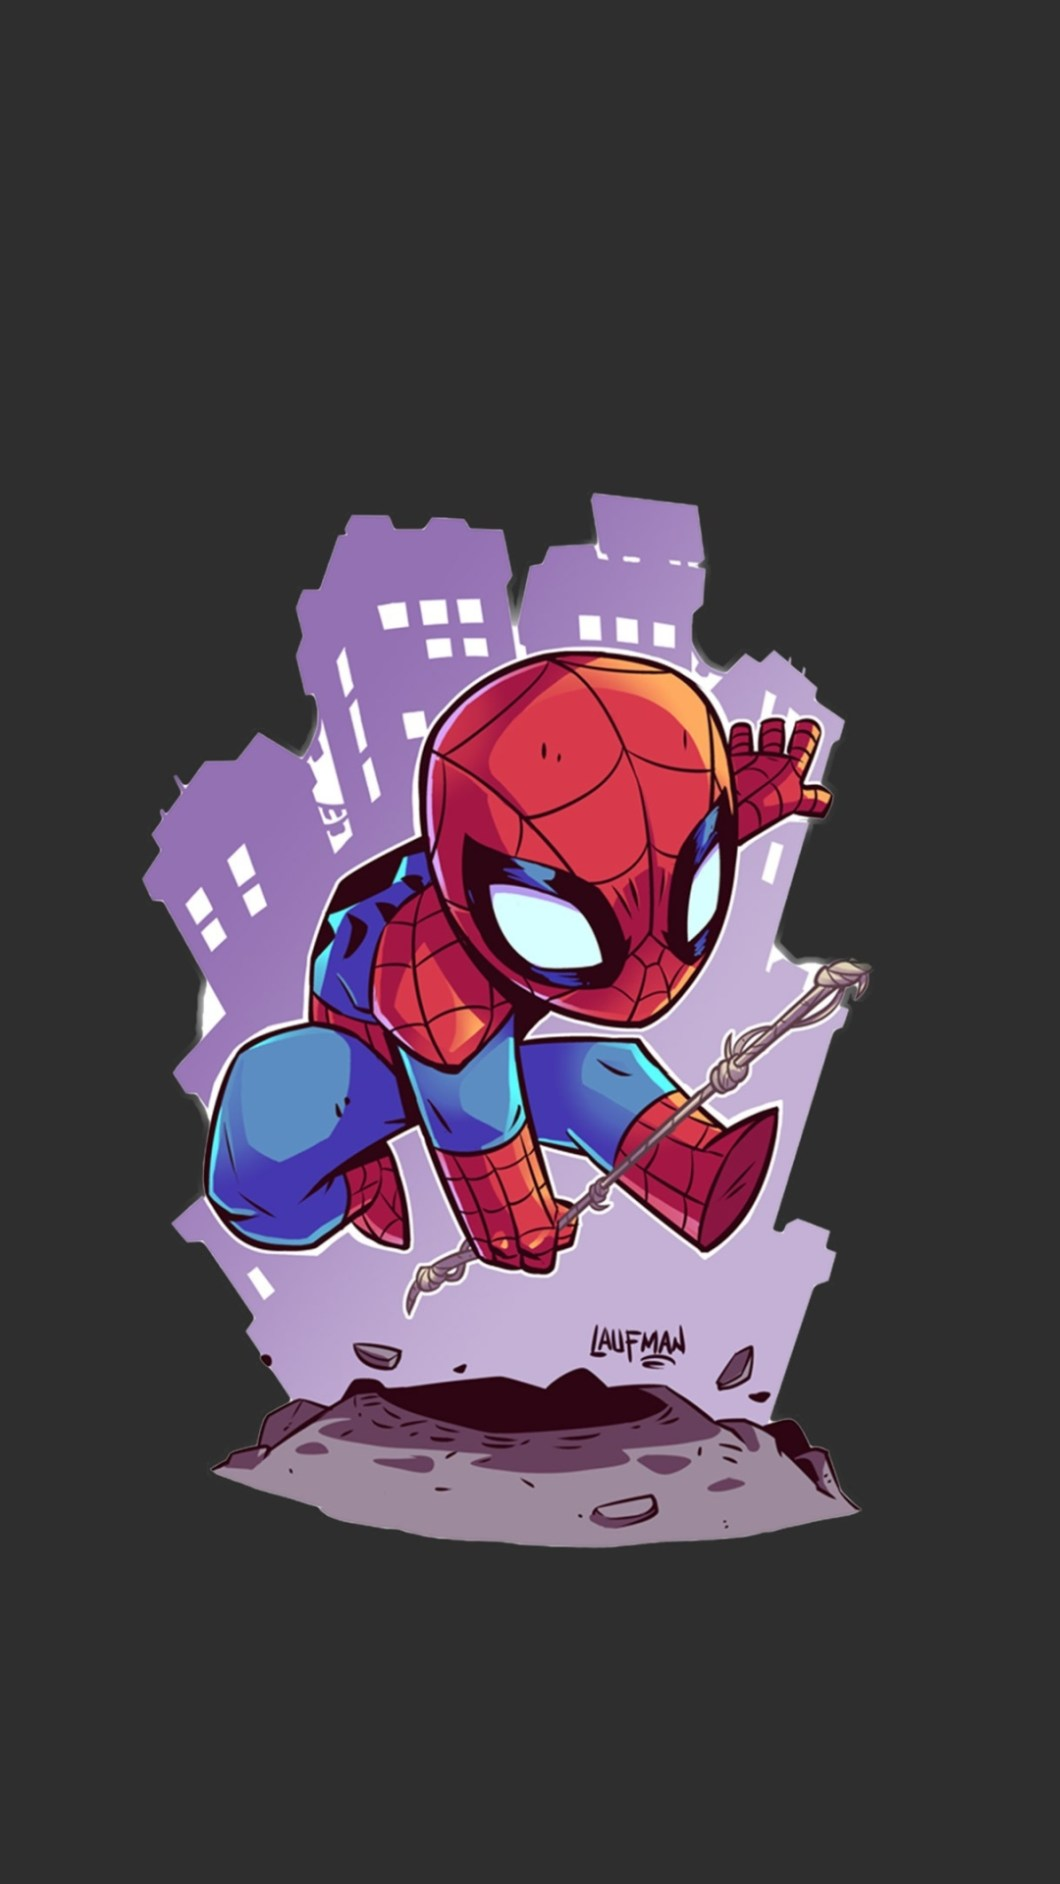 Spiderman cartoon wallpaper iphone - Iphone 6 spiderman wallpaper ...